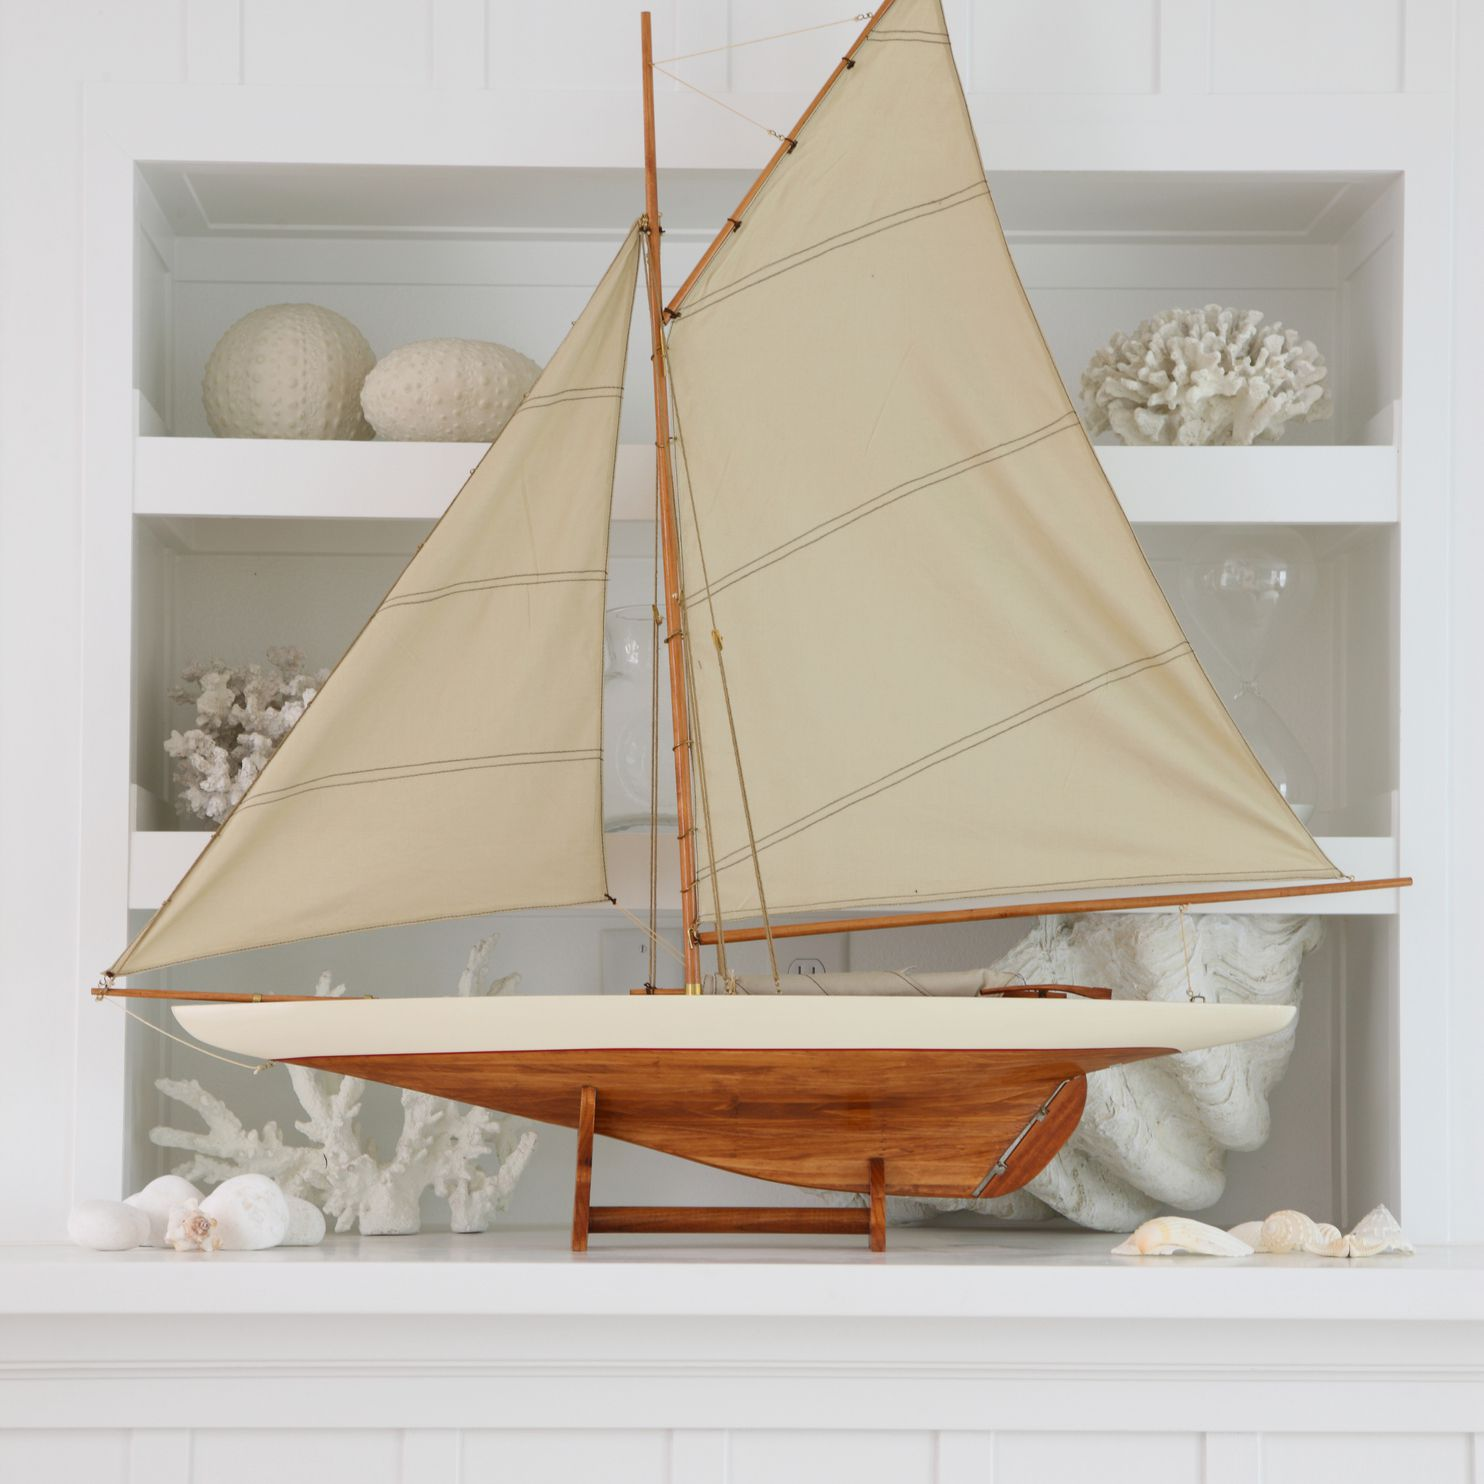 Beach house mantle with a model ship